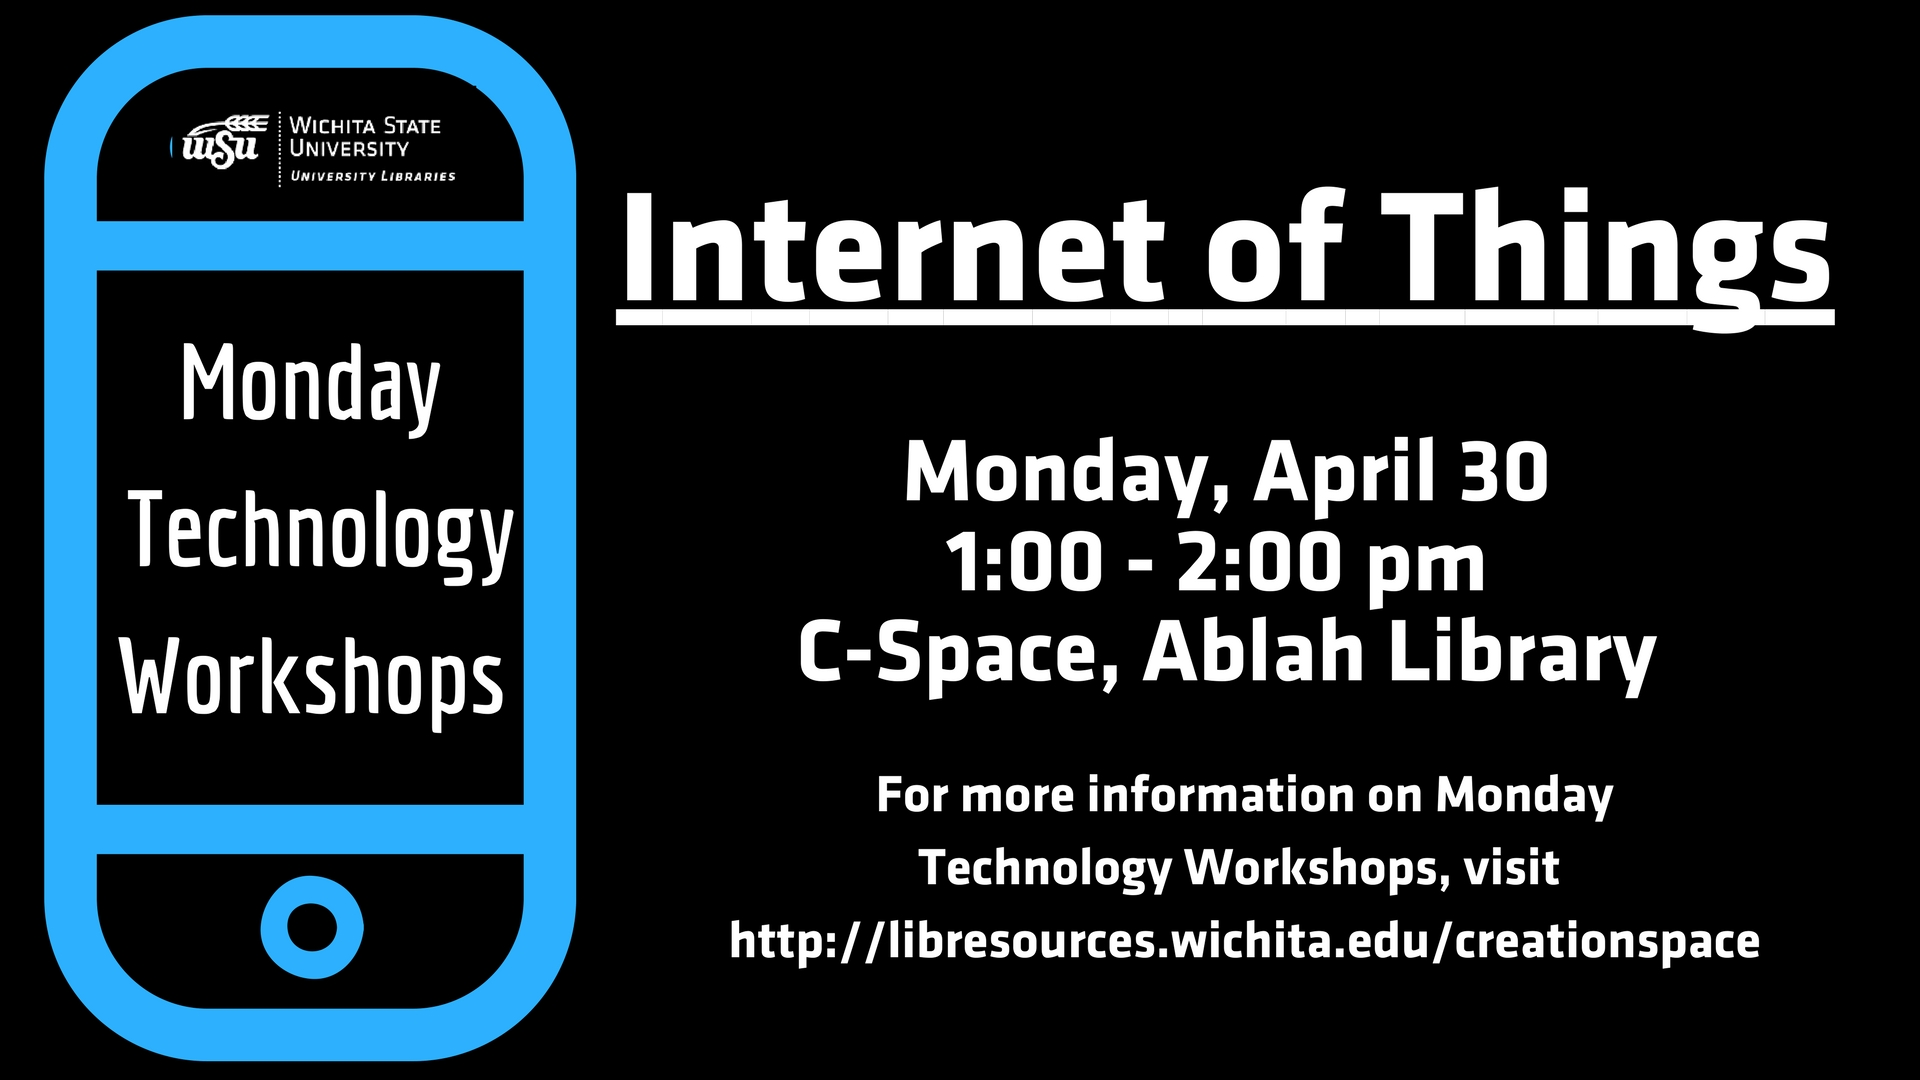 Monday Technology Workshop - Internet of Things